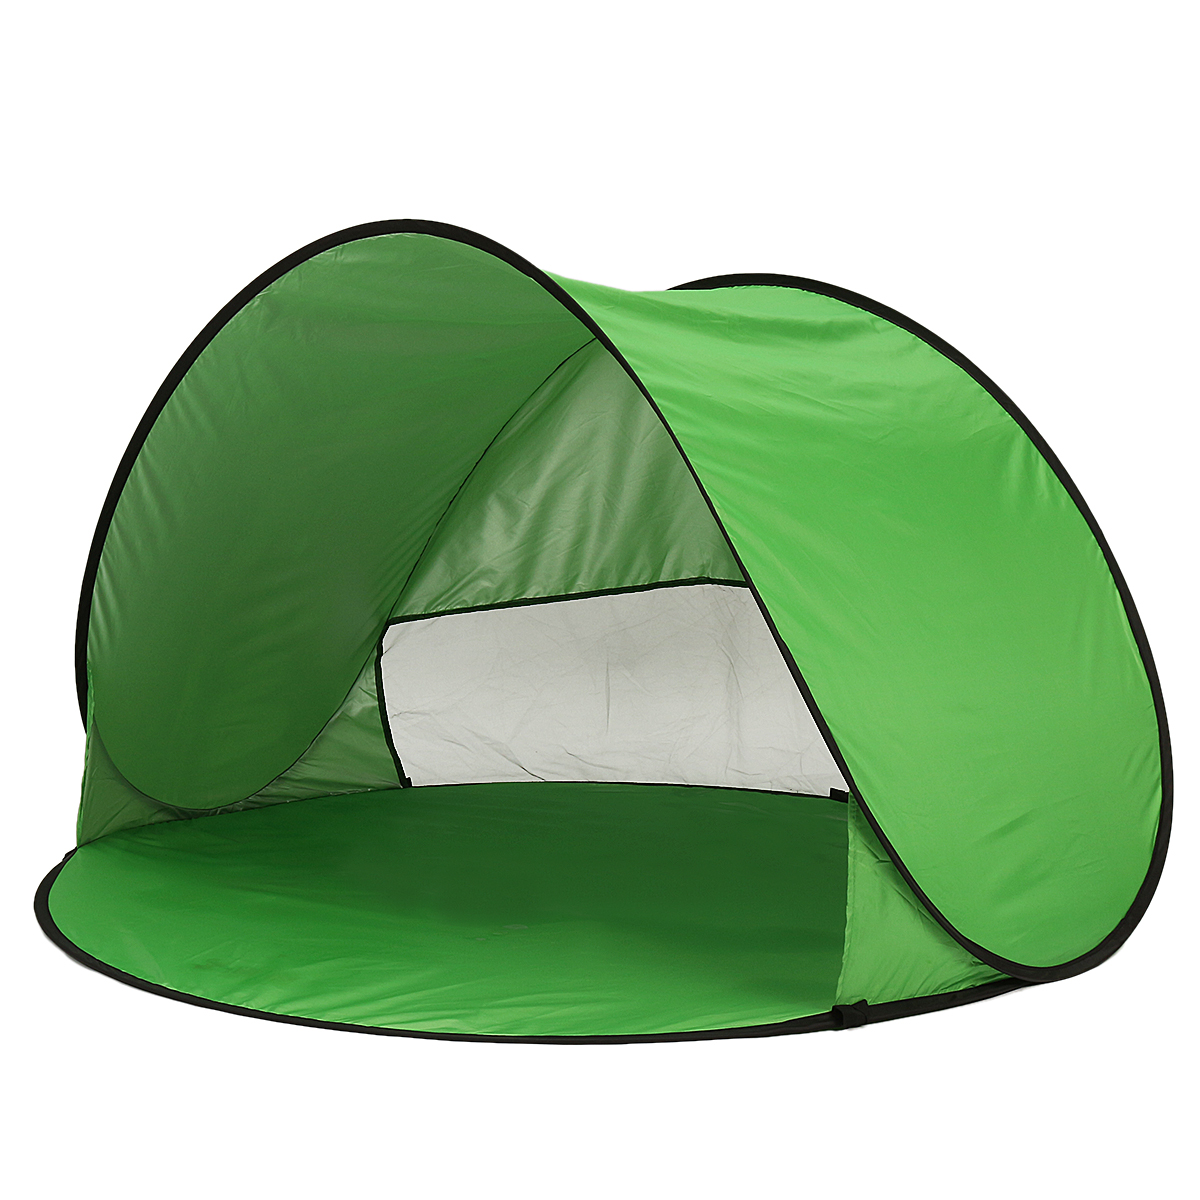 Outdoor 1-2 Person Camping Tent Automatic Opening UV Be